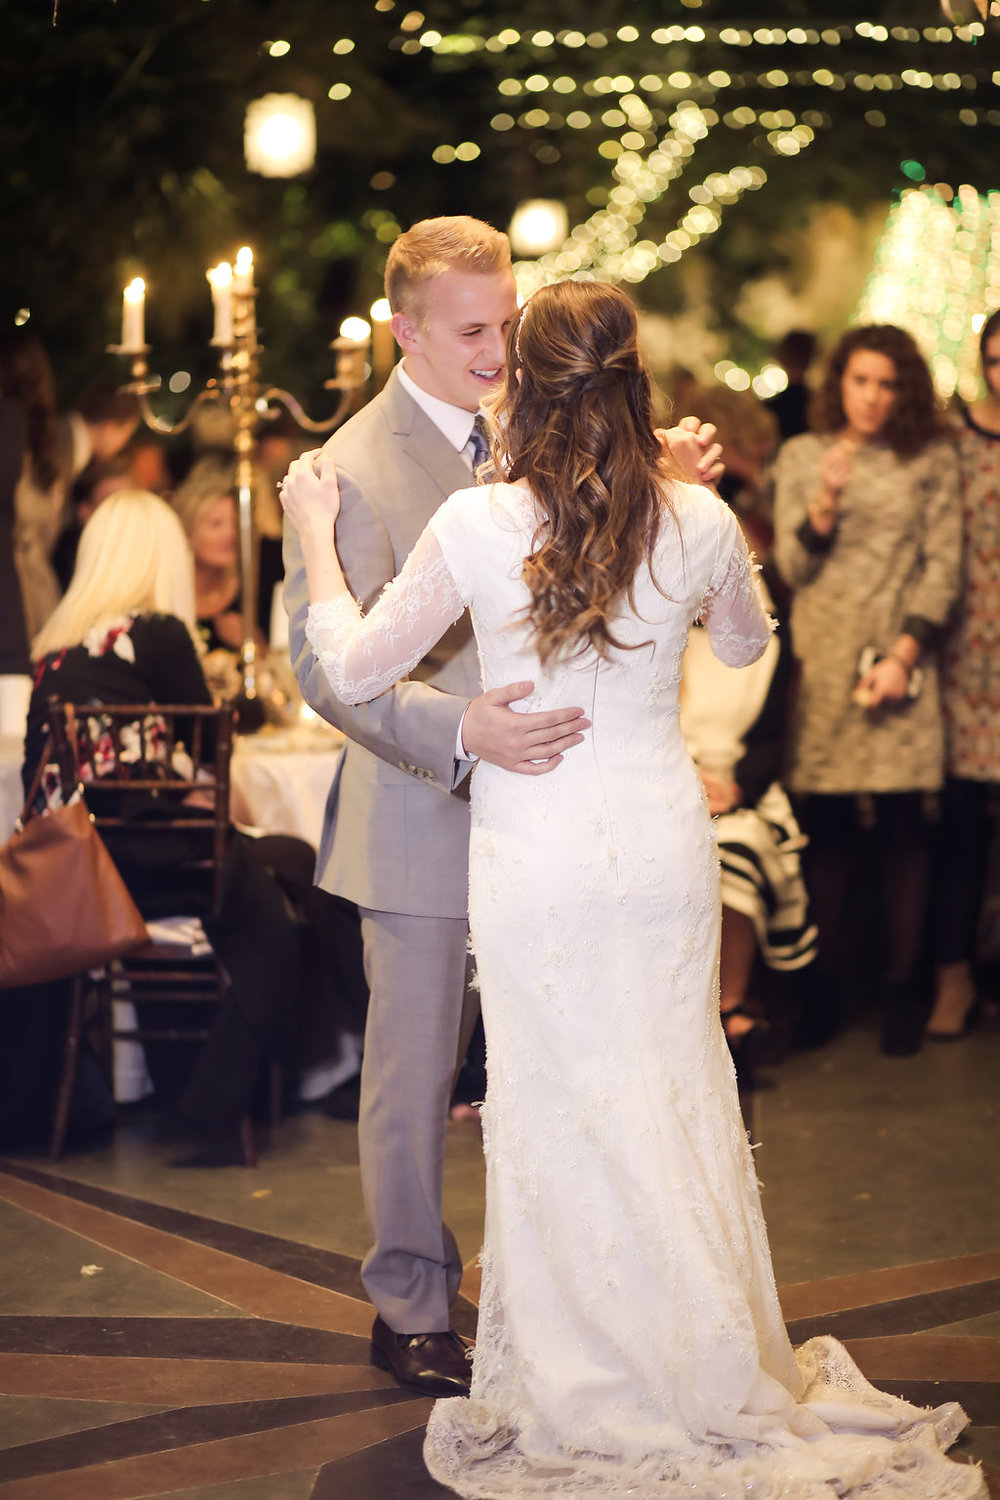 Winter Wedding at La Caille   Romantic Winter Wedding   La Caille Wedding   Michelle Leo Events   Utah Event Planner and Designer   Pepper Nix Photography